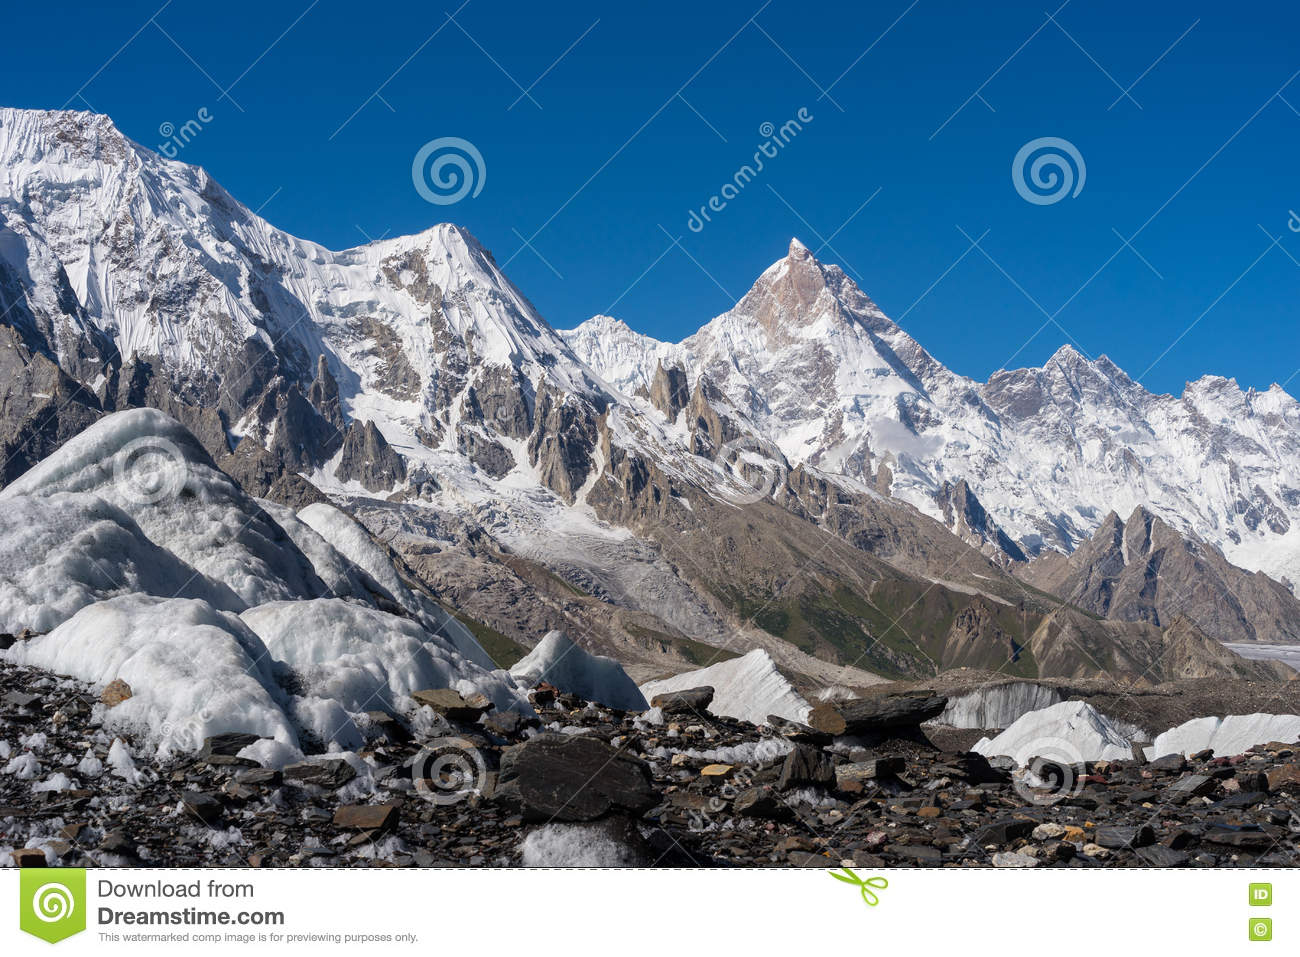 masherbrum bergspitze mit baltoro gletscher wanderung k2 stockfoto bild 79622814. Black Bedroom Furniture Sets. Home Design Ideas